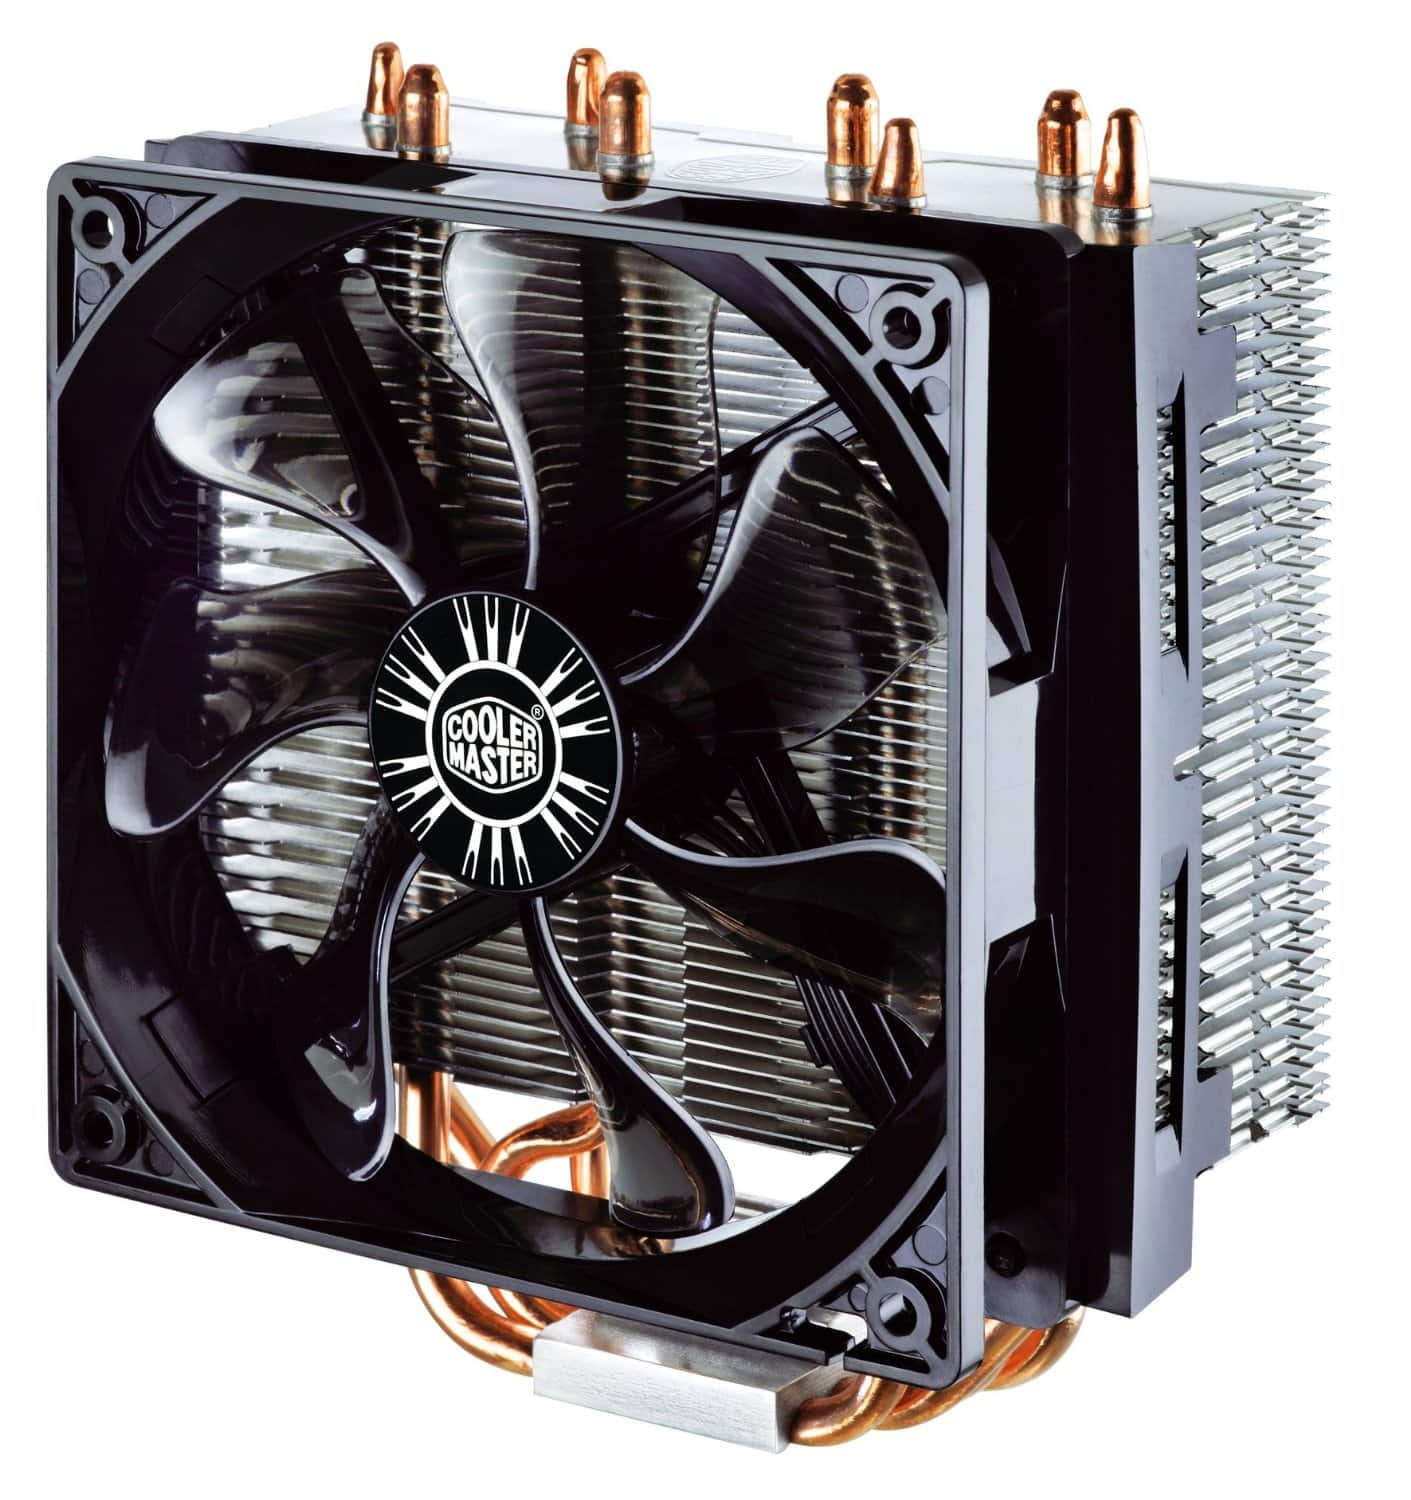 Cooler Master Hyper T4 - CPU Cooler with 4 Direct Contact Heatpipes $9.99 AR Free Shipping @ Newegg